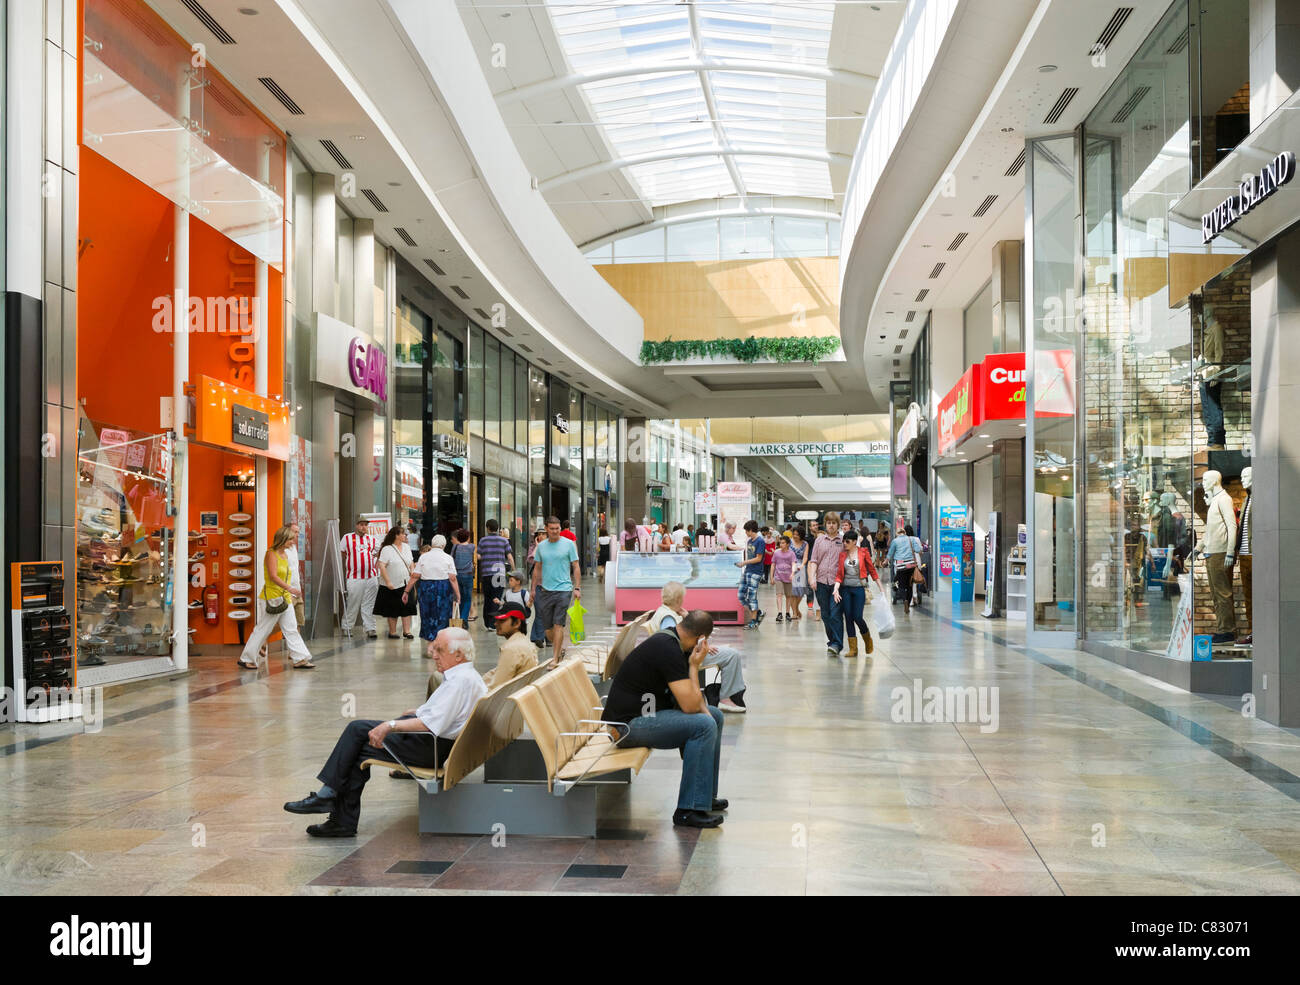 West Quay Shopping Centre in the city centre, Southampton, Hampshire, England, UK - Stock Image